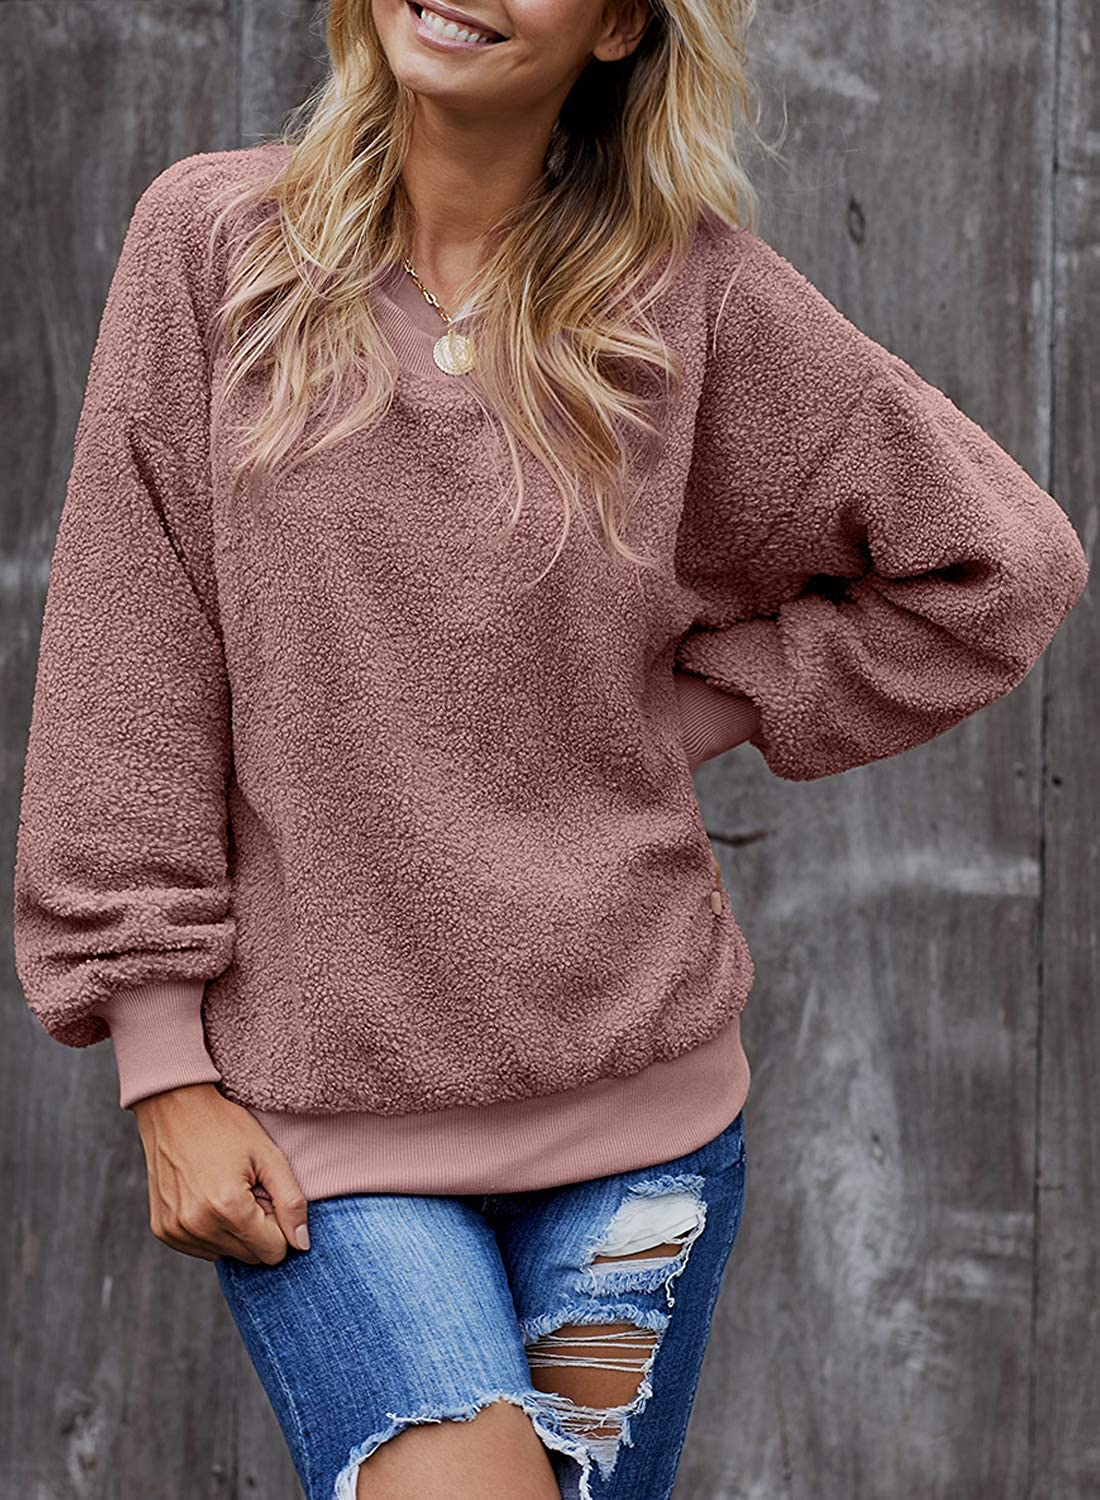 Ecrocoo Womens Crewneck Long Sleeve Fuzzy Solid Sweatshirt Tops Casual Loose Fitting Pullover Shirt